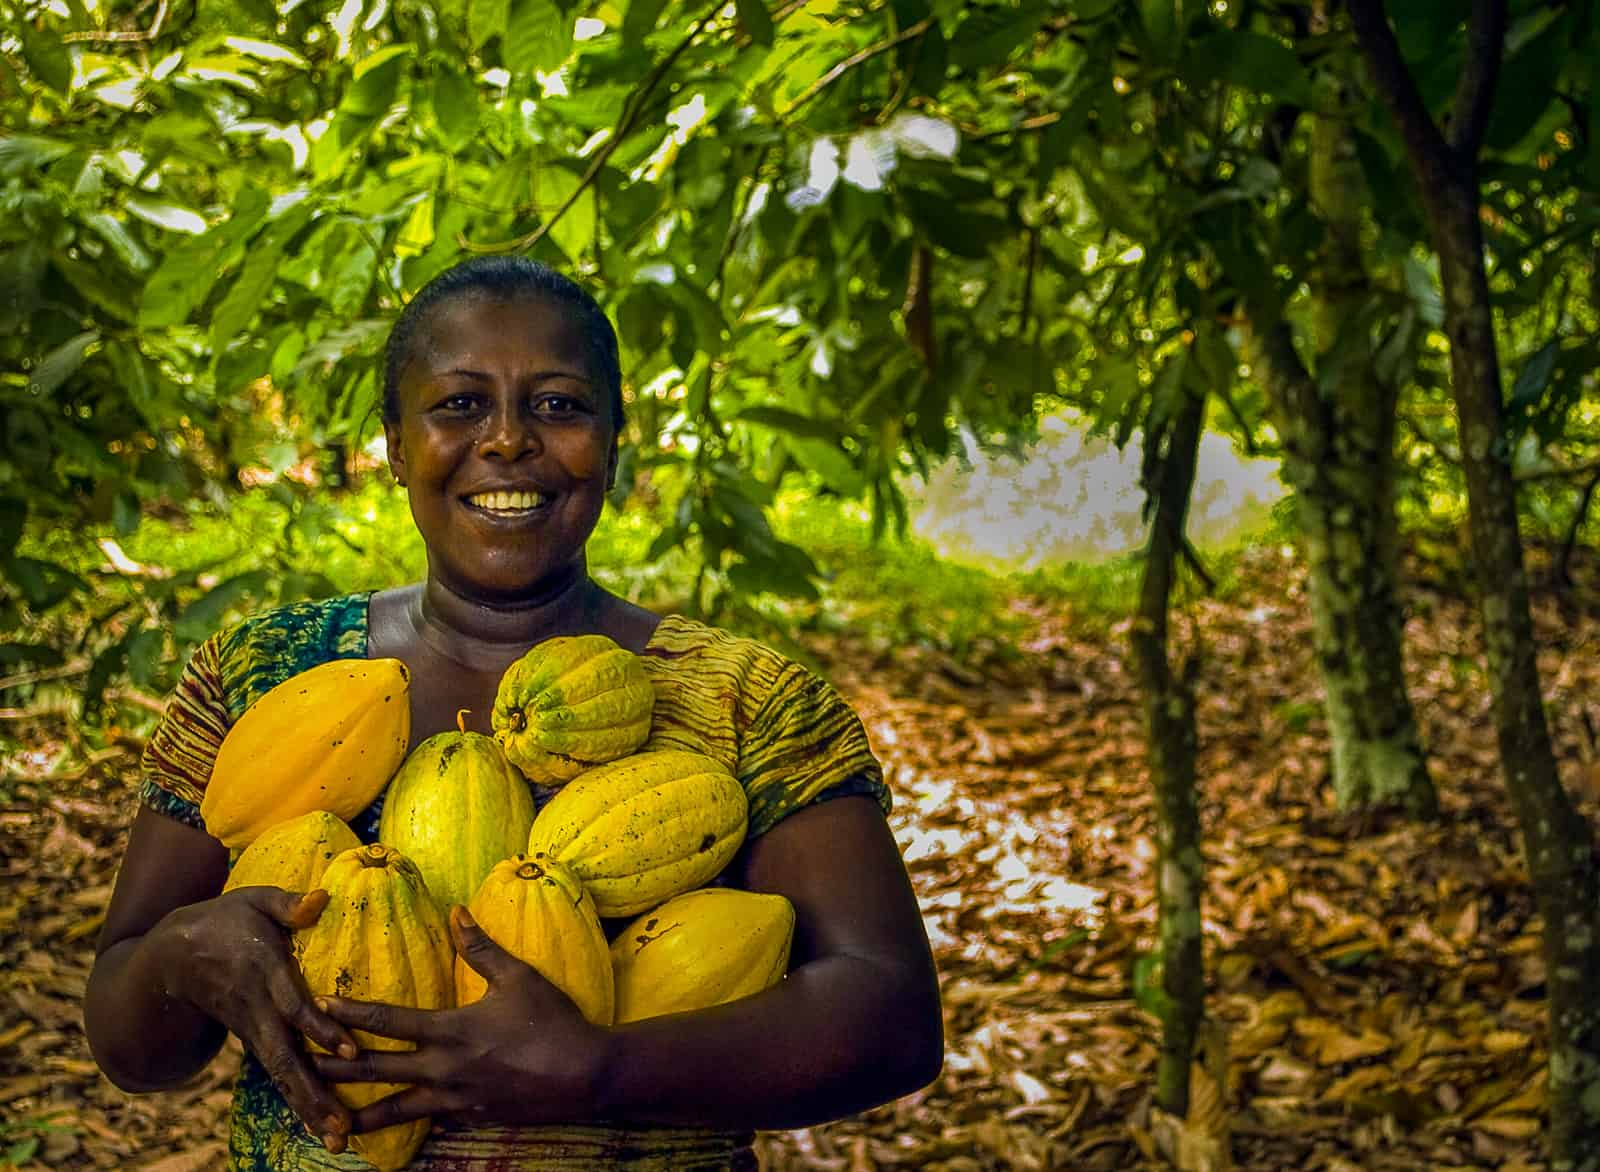 A woman stands smiling and holding a pile of bright yellow fruit surrounded by trees in the Amazon rainforest.